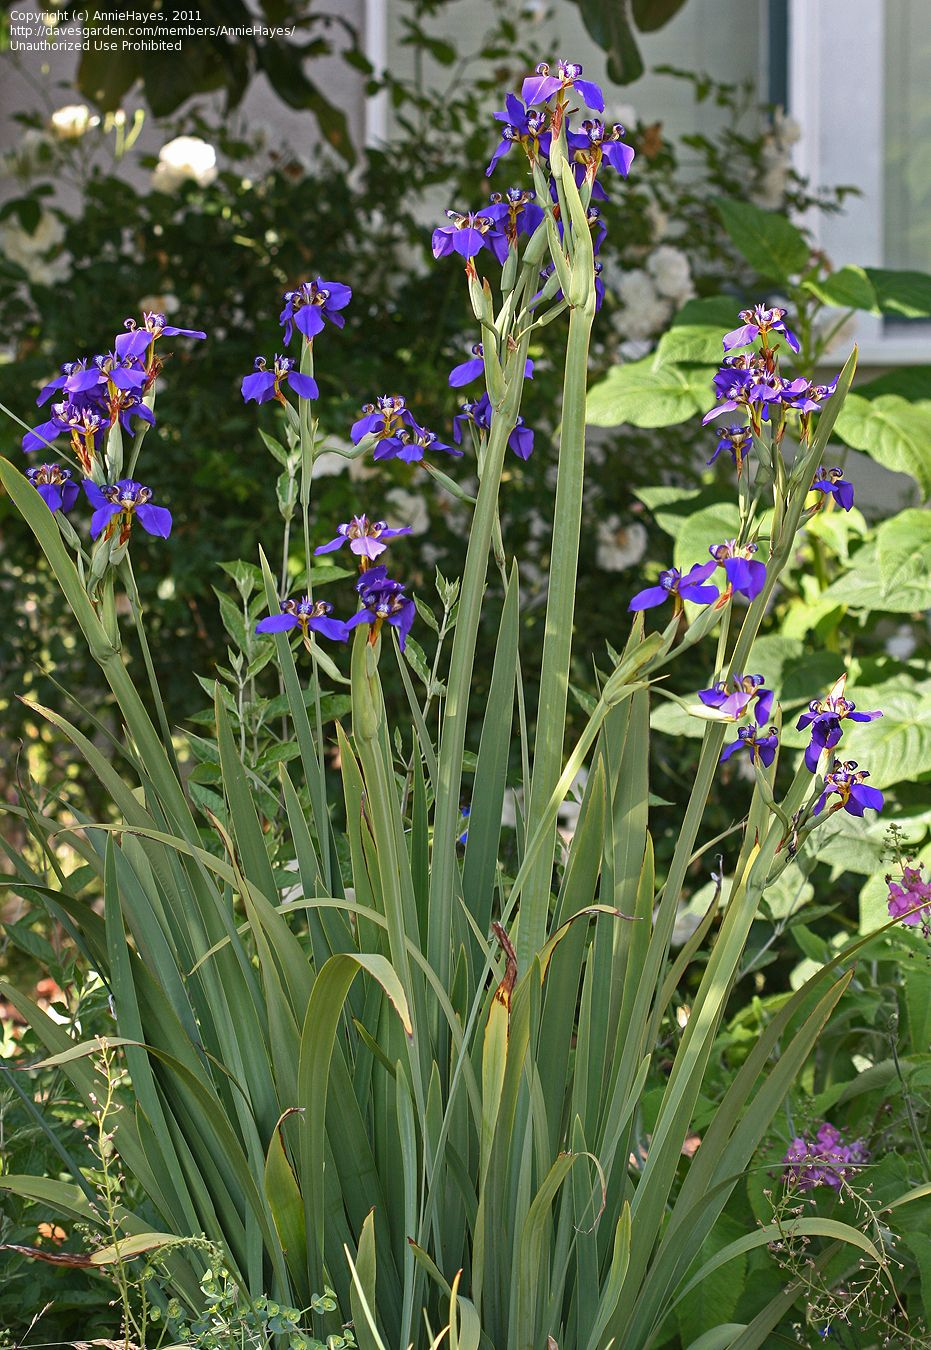 View picture of walking iris twelve apostles neomarica caerulea view picture of walking iris twelve apostles neomarica caerulea at daves garden all pictures are contributed by our community izmirmasajfo